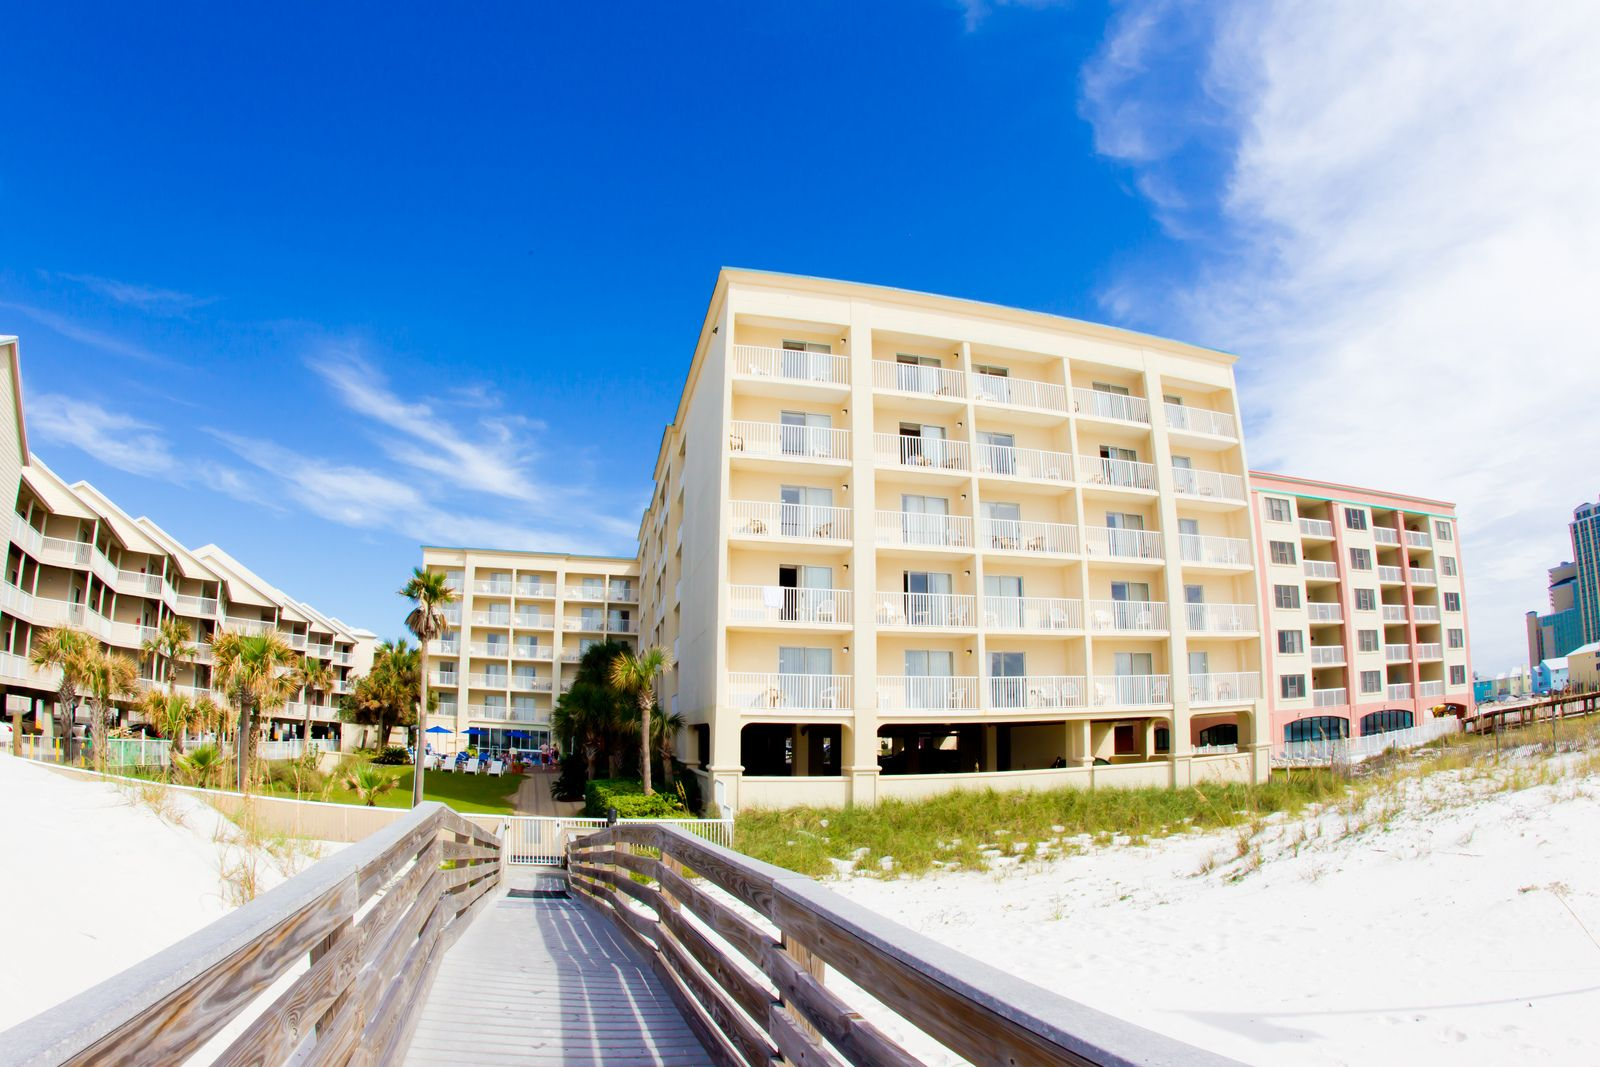 You Ll Find The Sugar White Sand And The Emerald Green Waters Of Of Alabama S Famous Gulf Coast Bea With Images Orange Beach Hotels Beachfront Hotels Orange Beach Vacation